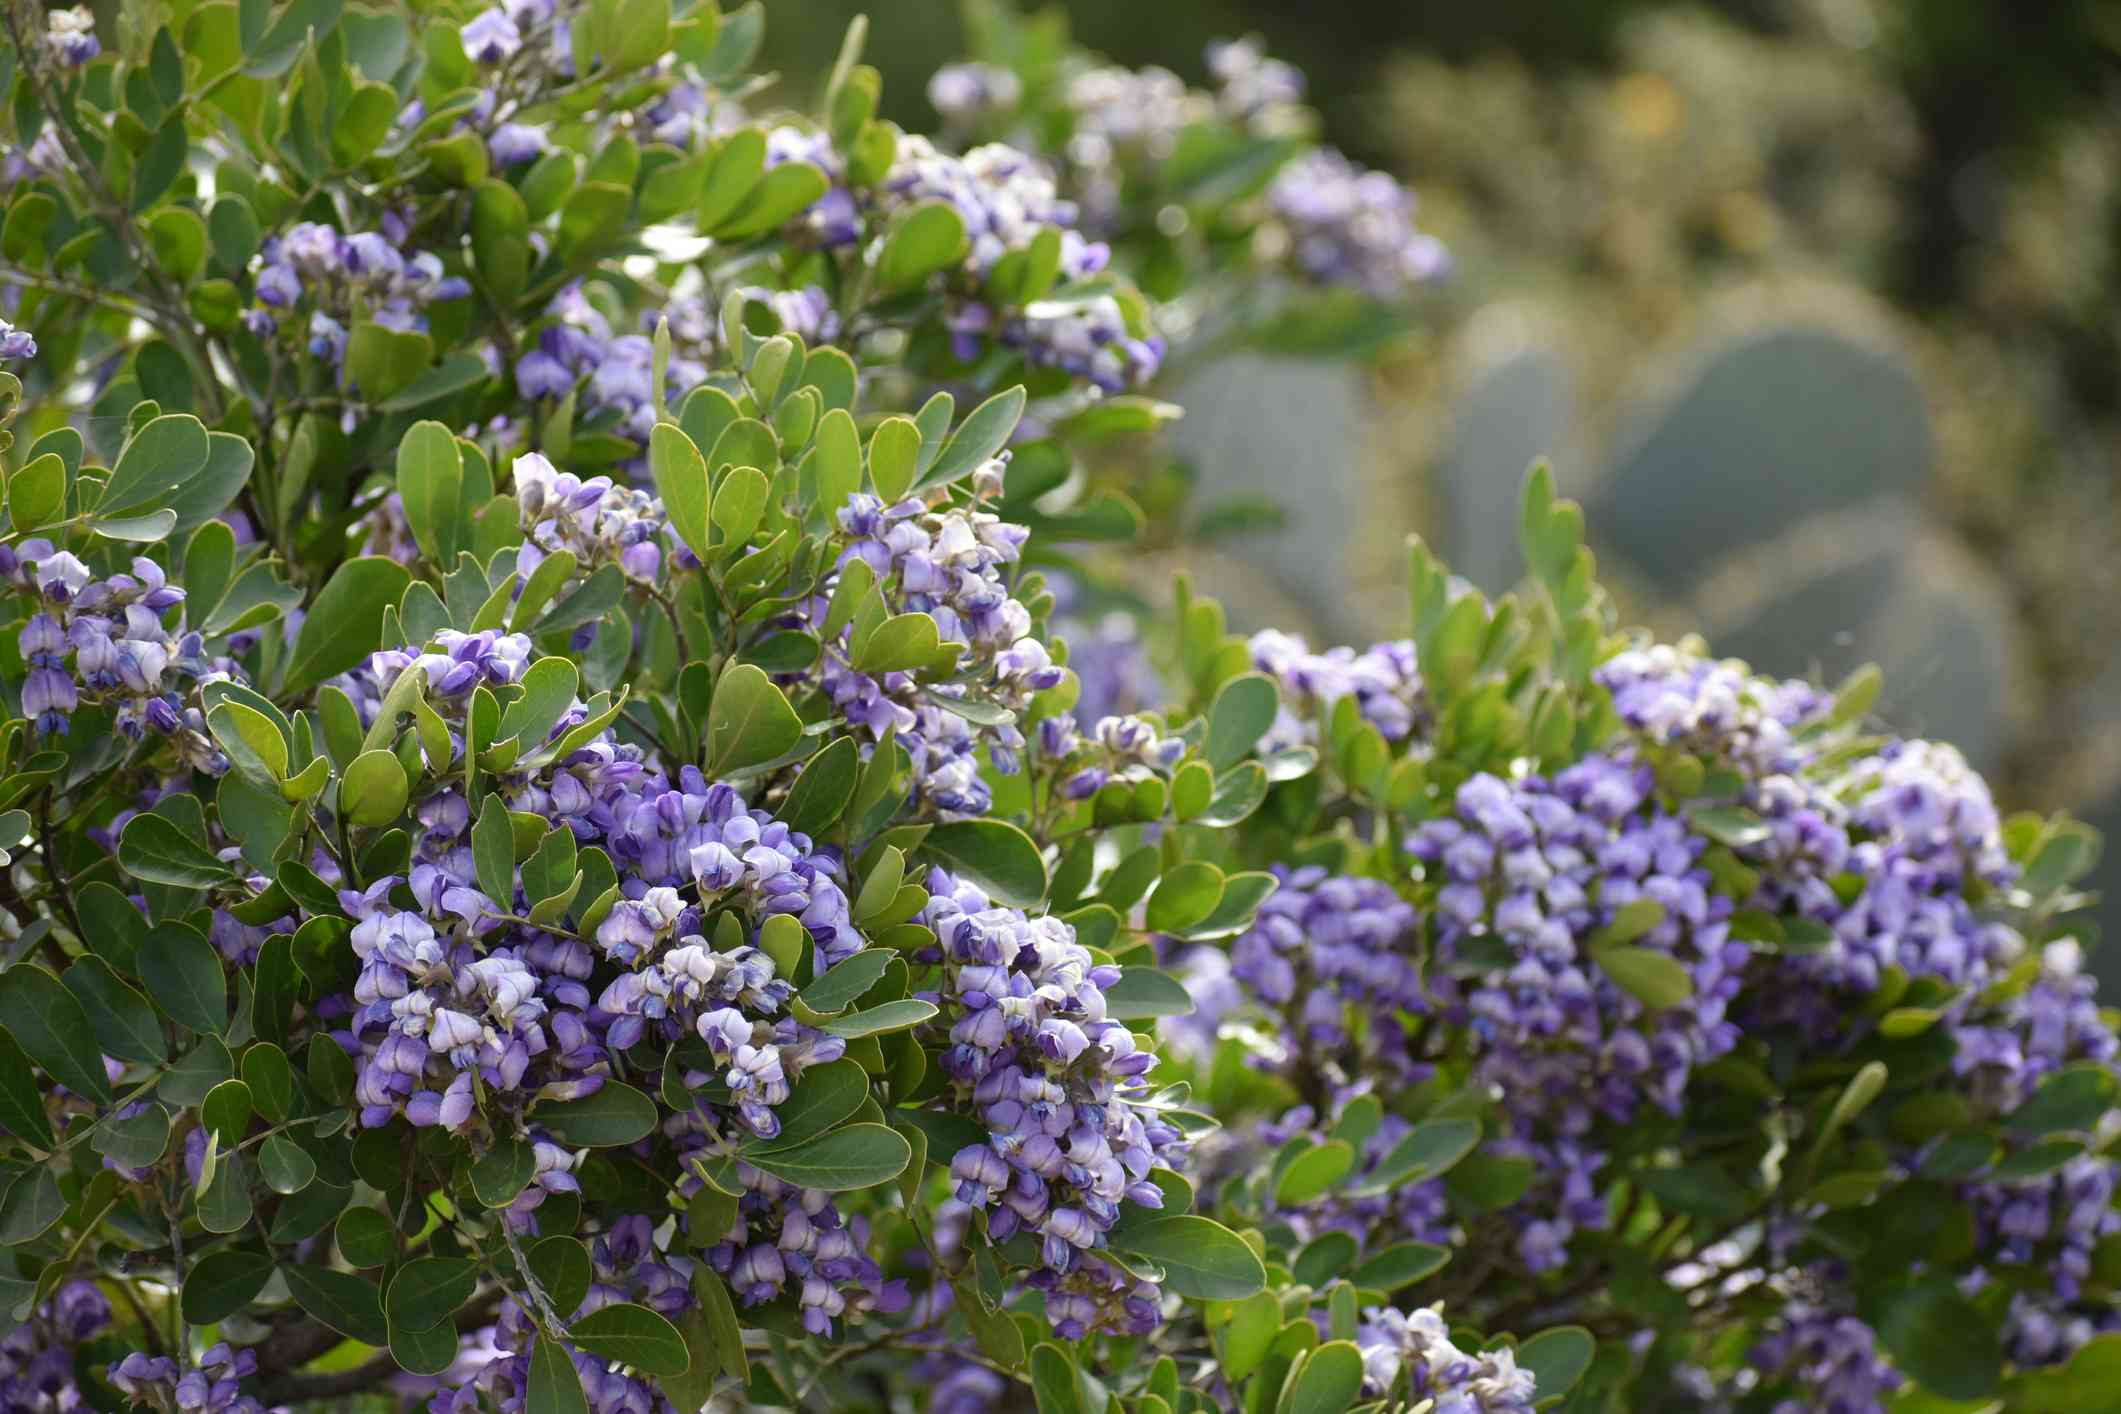 Texas Mountain Laurel with purple flowers